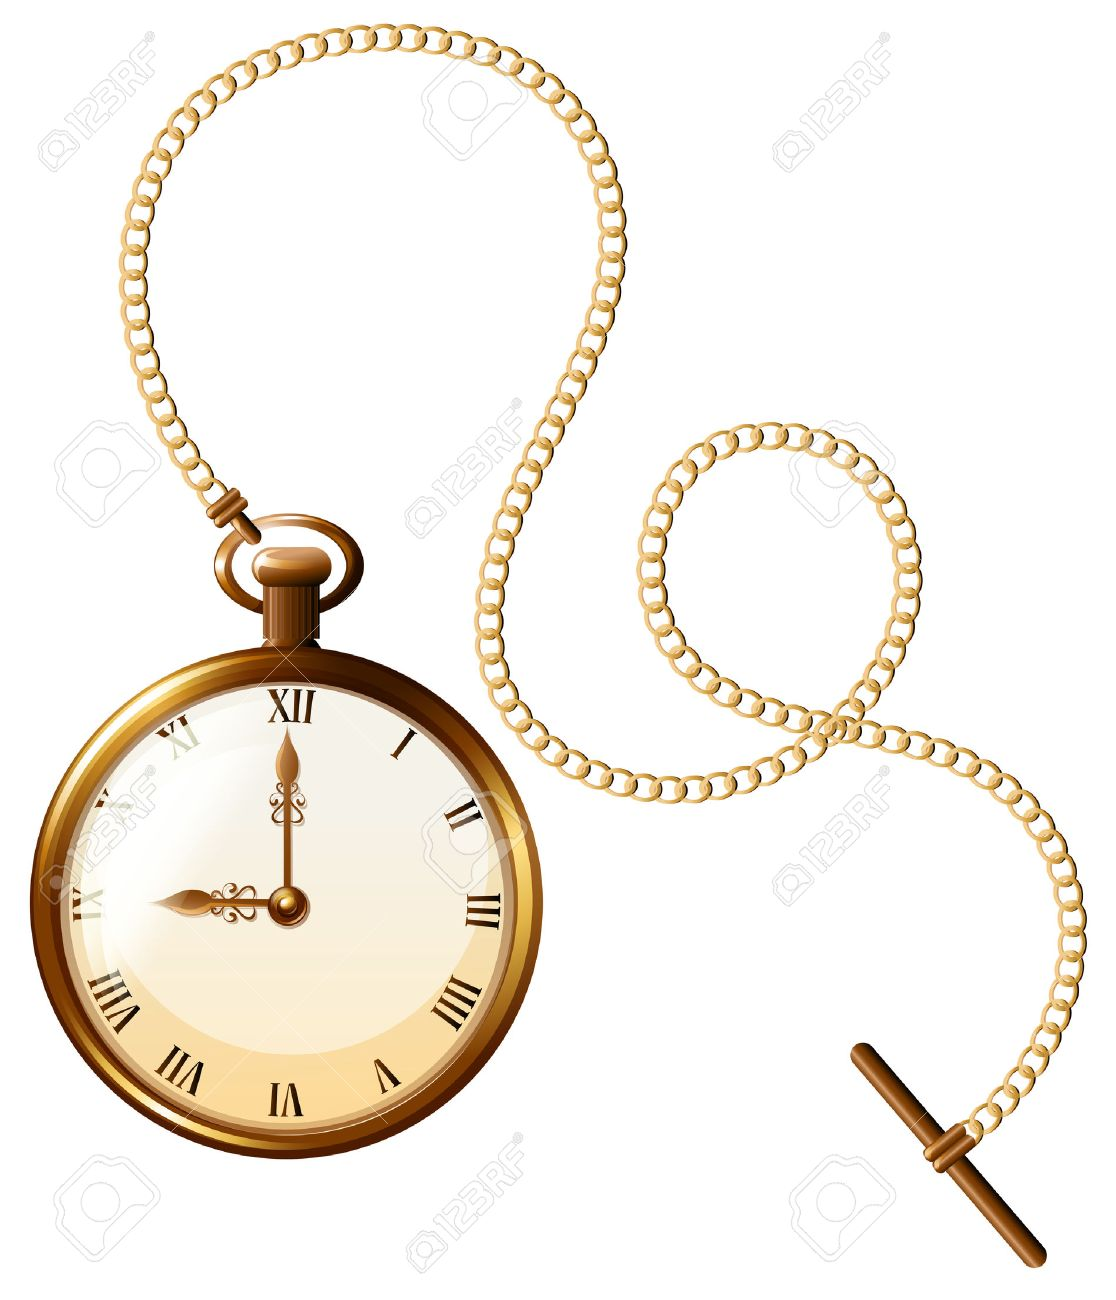 Image result for pocket watch clipart